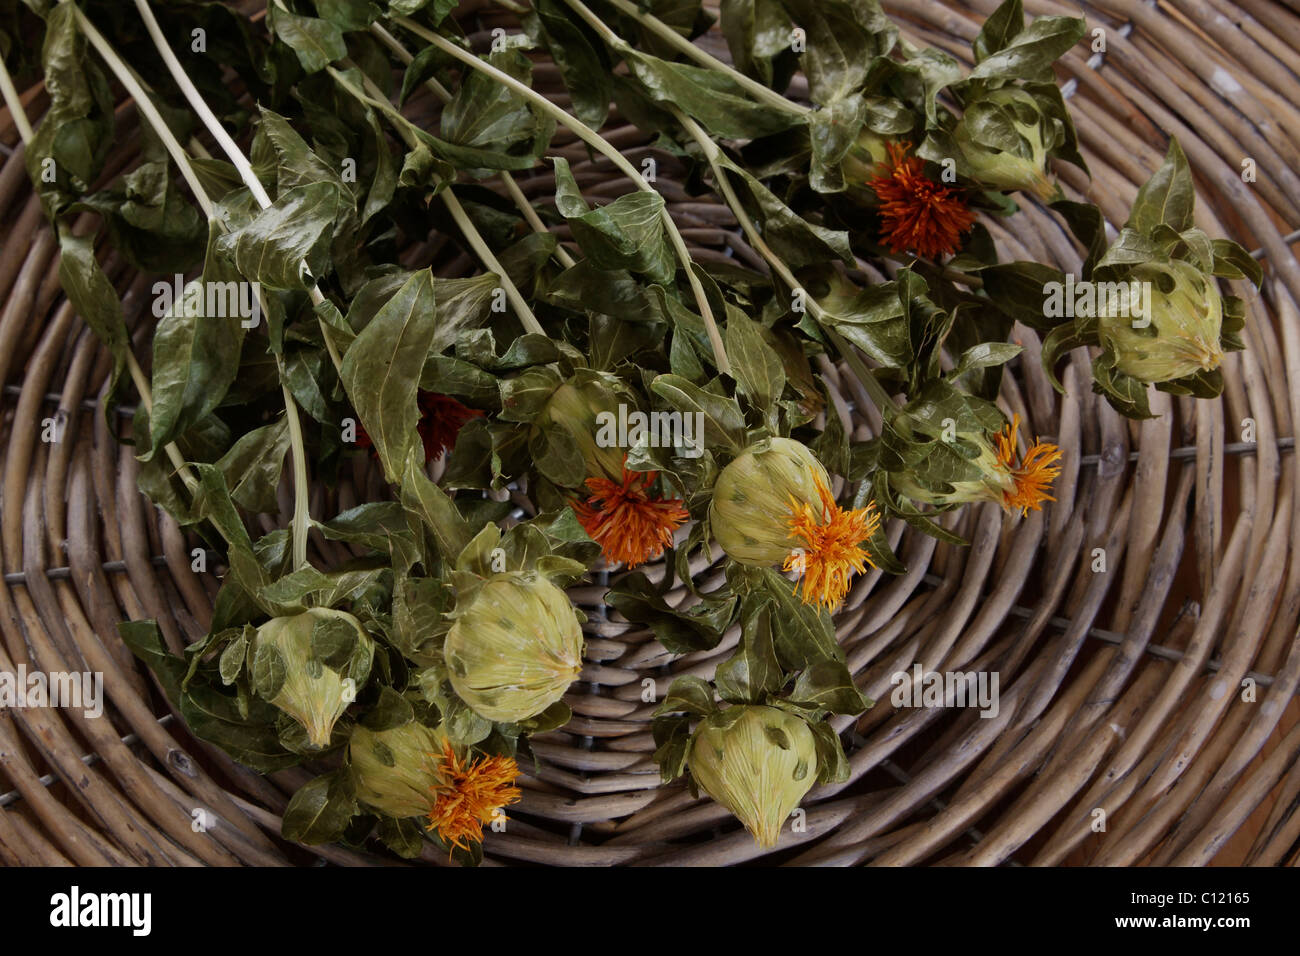 Dried distaff thistles (Carthamus) in a woven basket - Stock Image